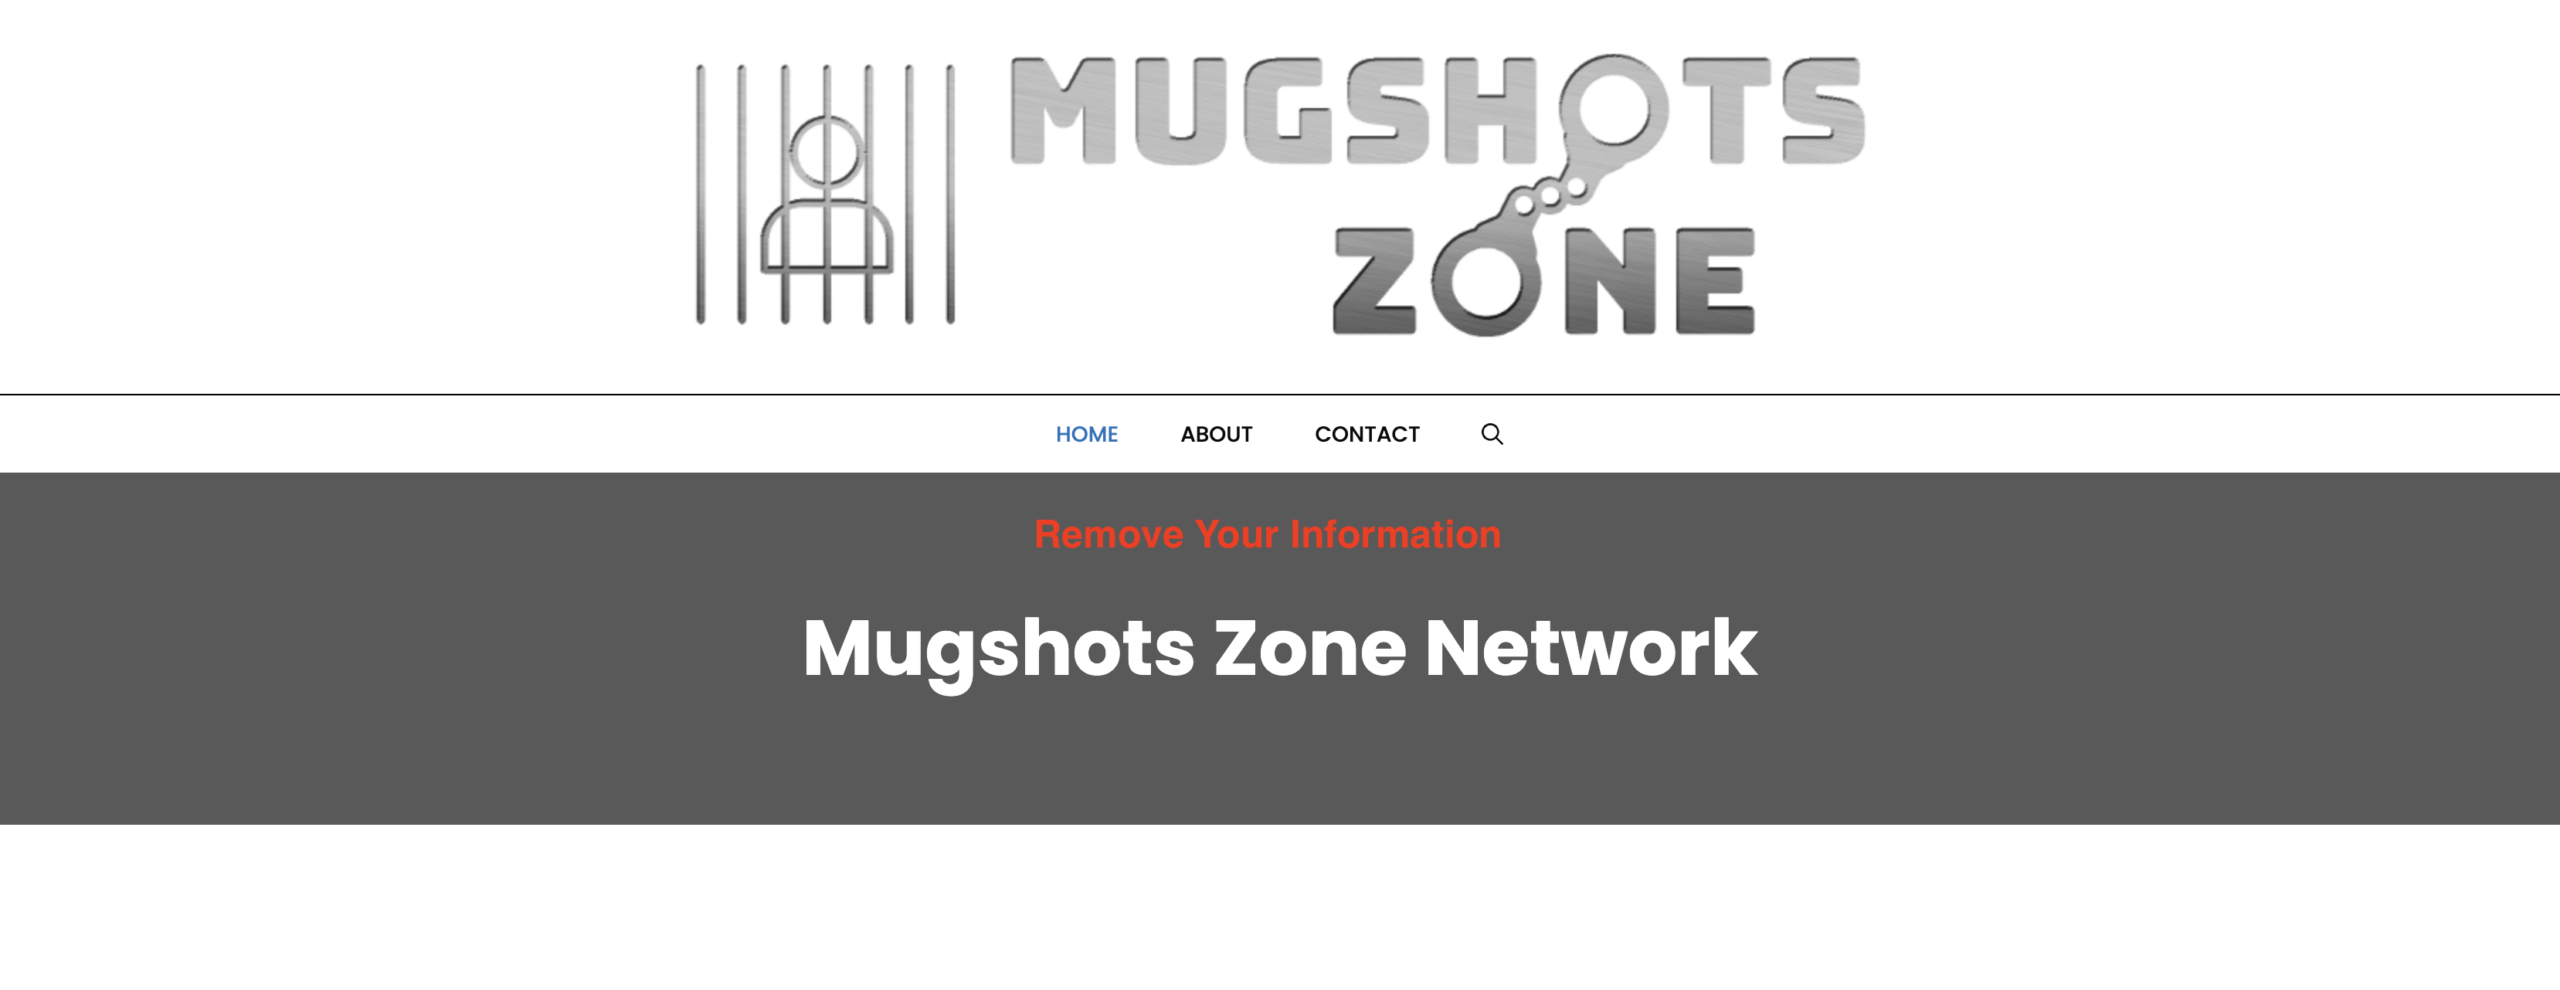 Mugshots.Zone Removal: How to remove your records from Mugshots.Zone